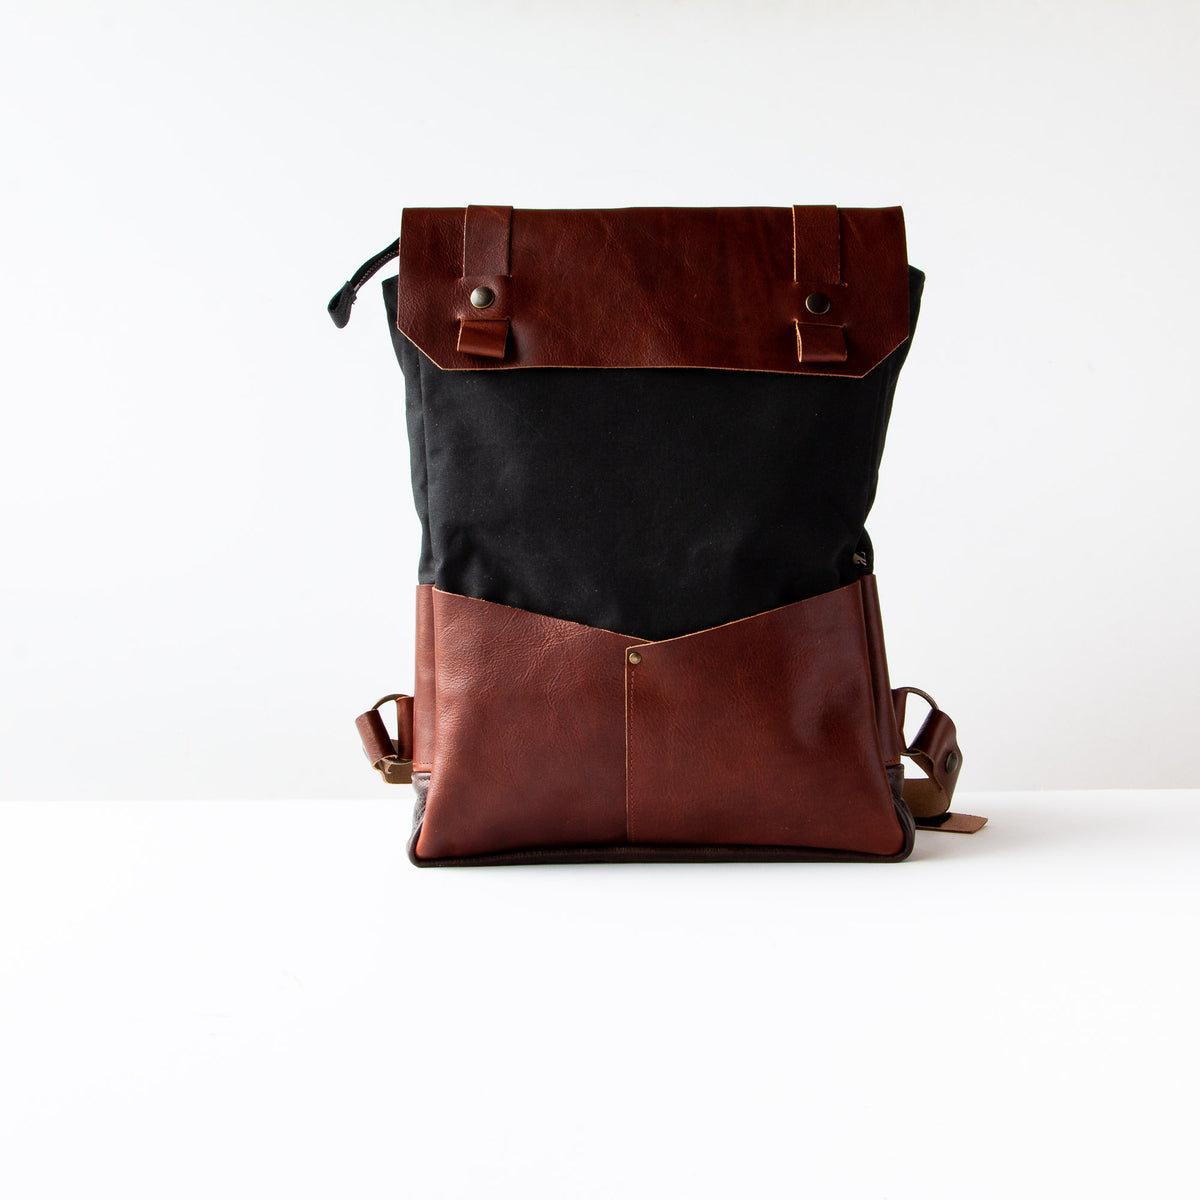 Andes - Handmade 15 Inch Laptop Backpack - Leather & Waxed Cotton - Sold by Chic & Basta